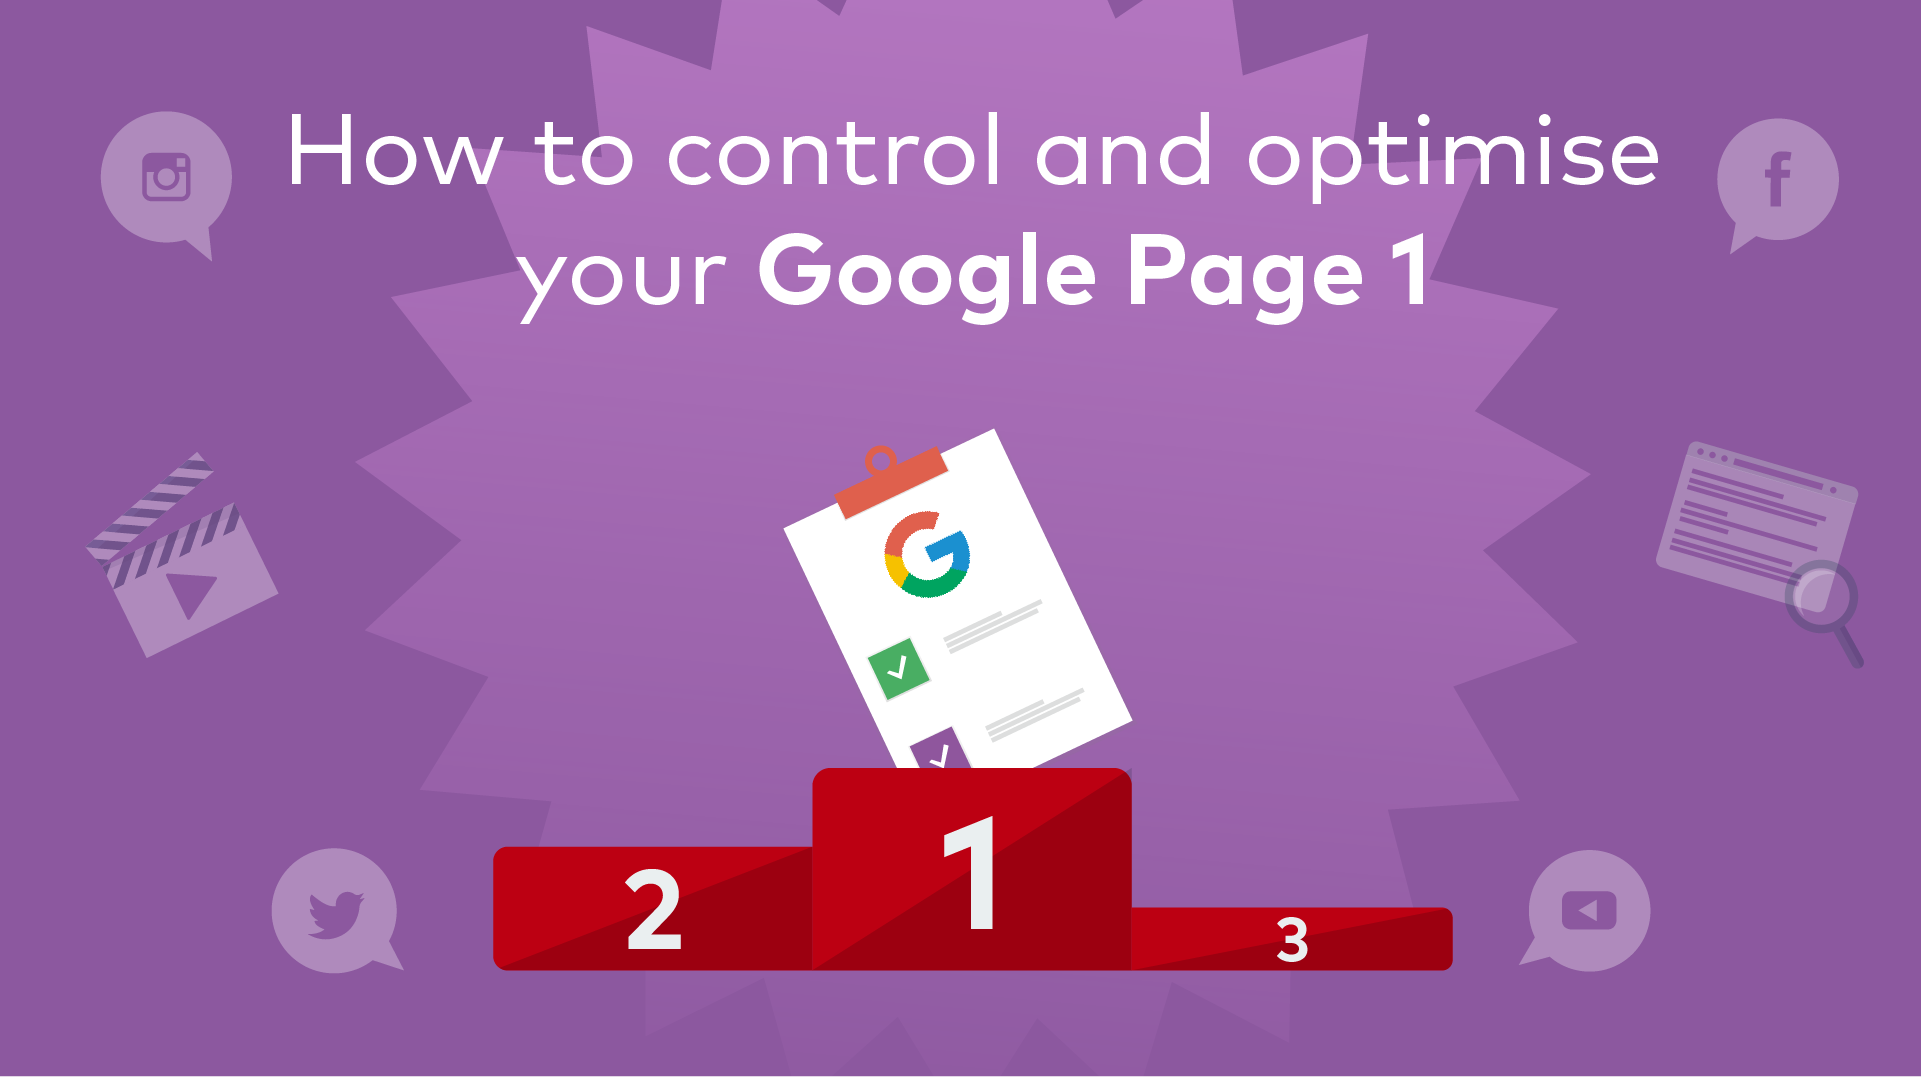 How to Control and Optimise Your Company's Google Page 1